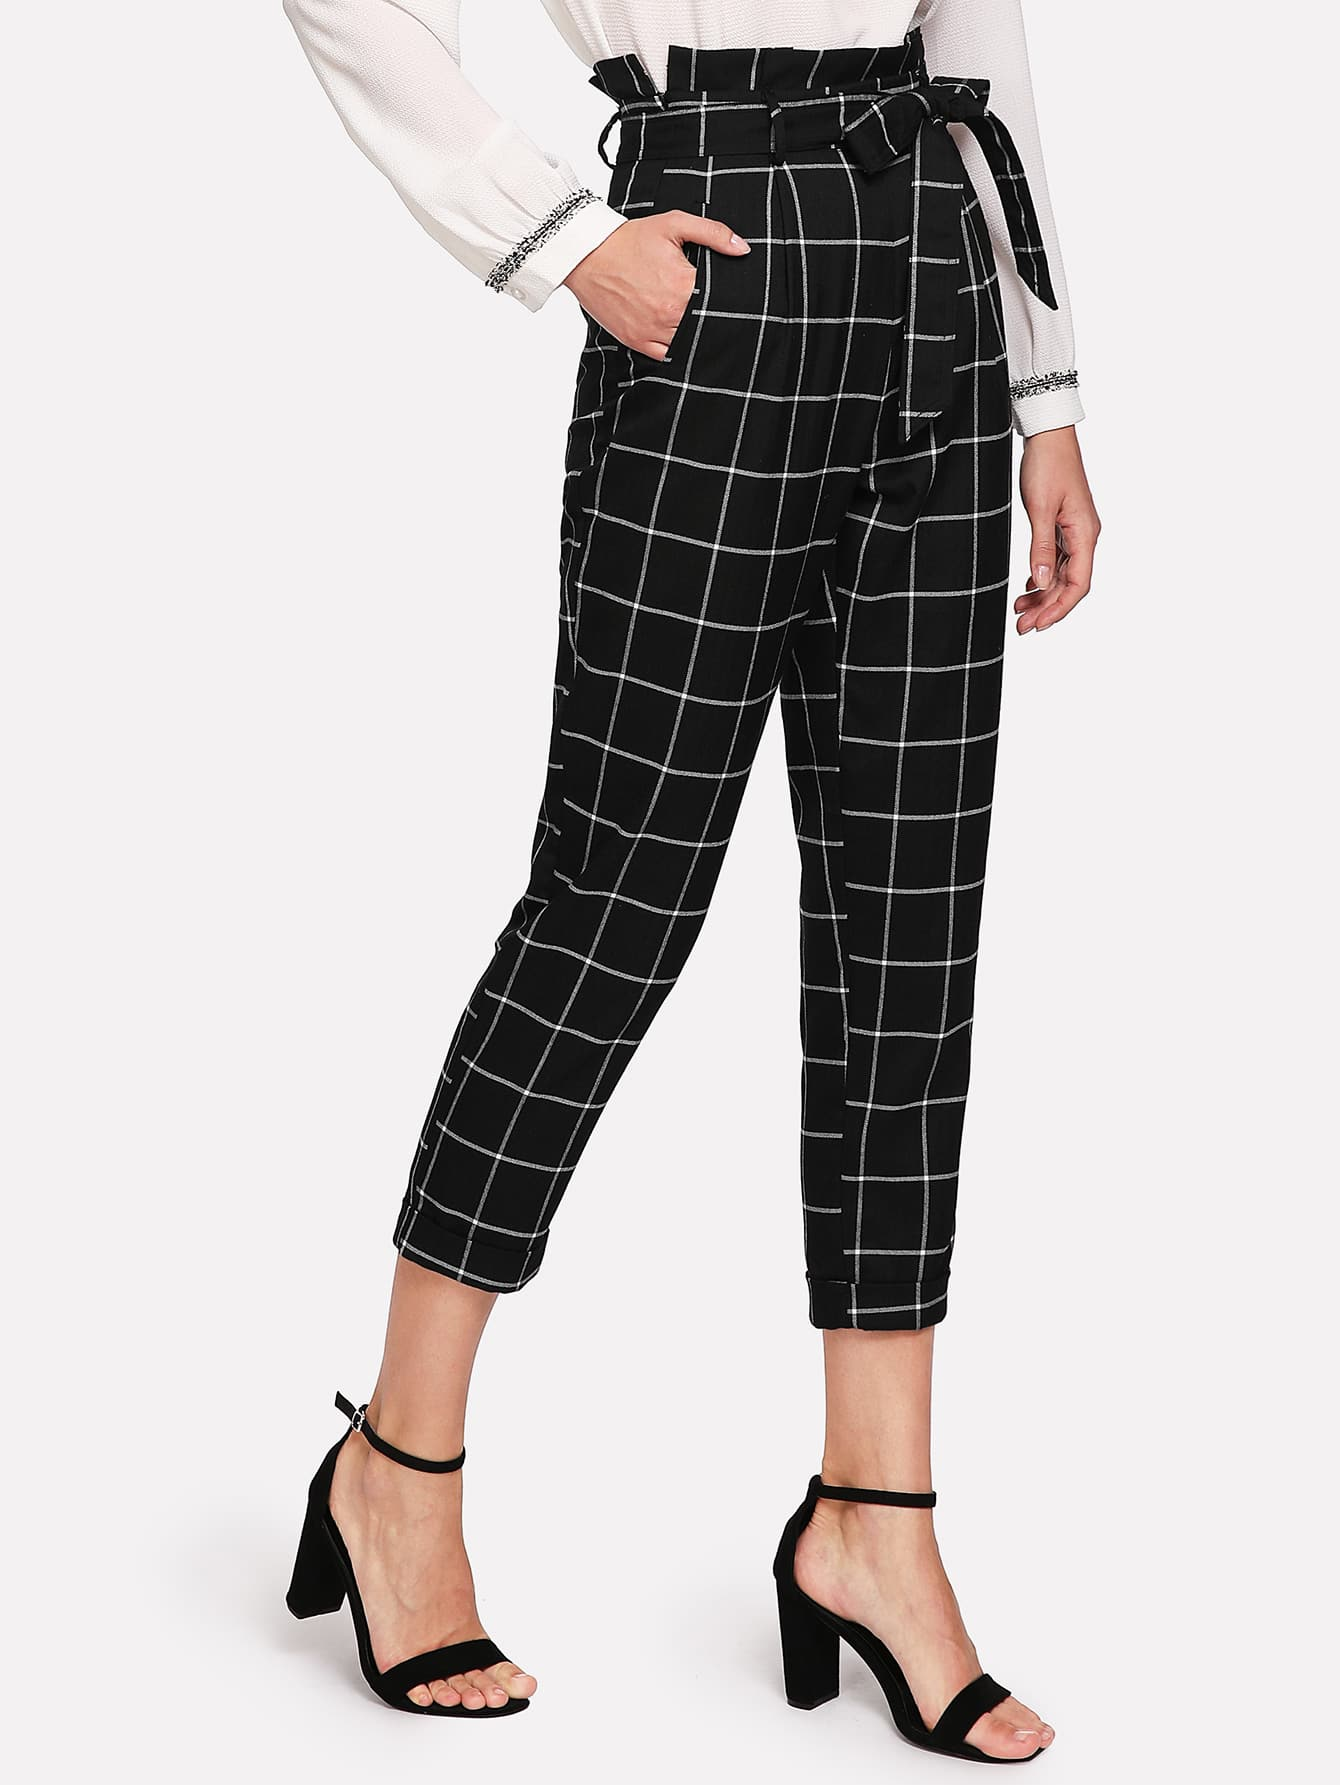 Self Belted Frilled Waist Grid Pants grid carrot pants